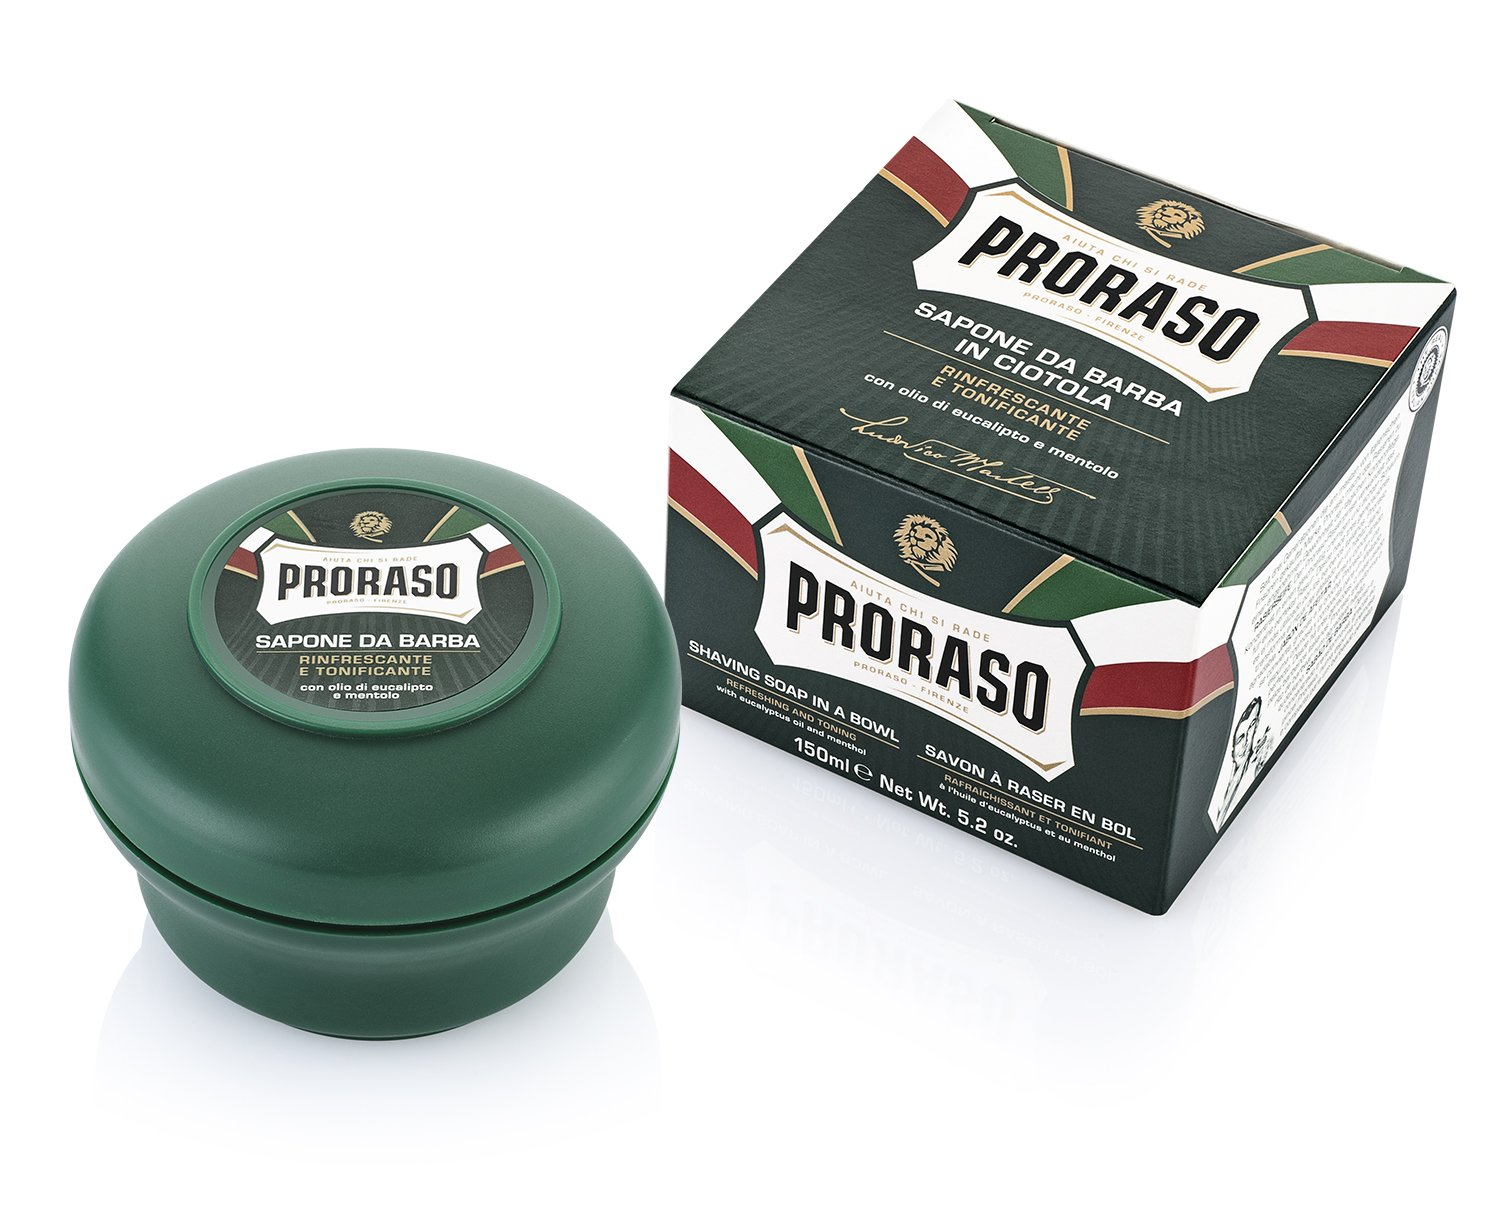 Proraso Shaving Soap in a Bowl, Refreshing and Toning, 5.2 oz